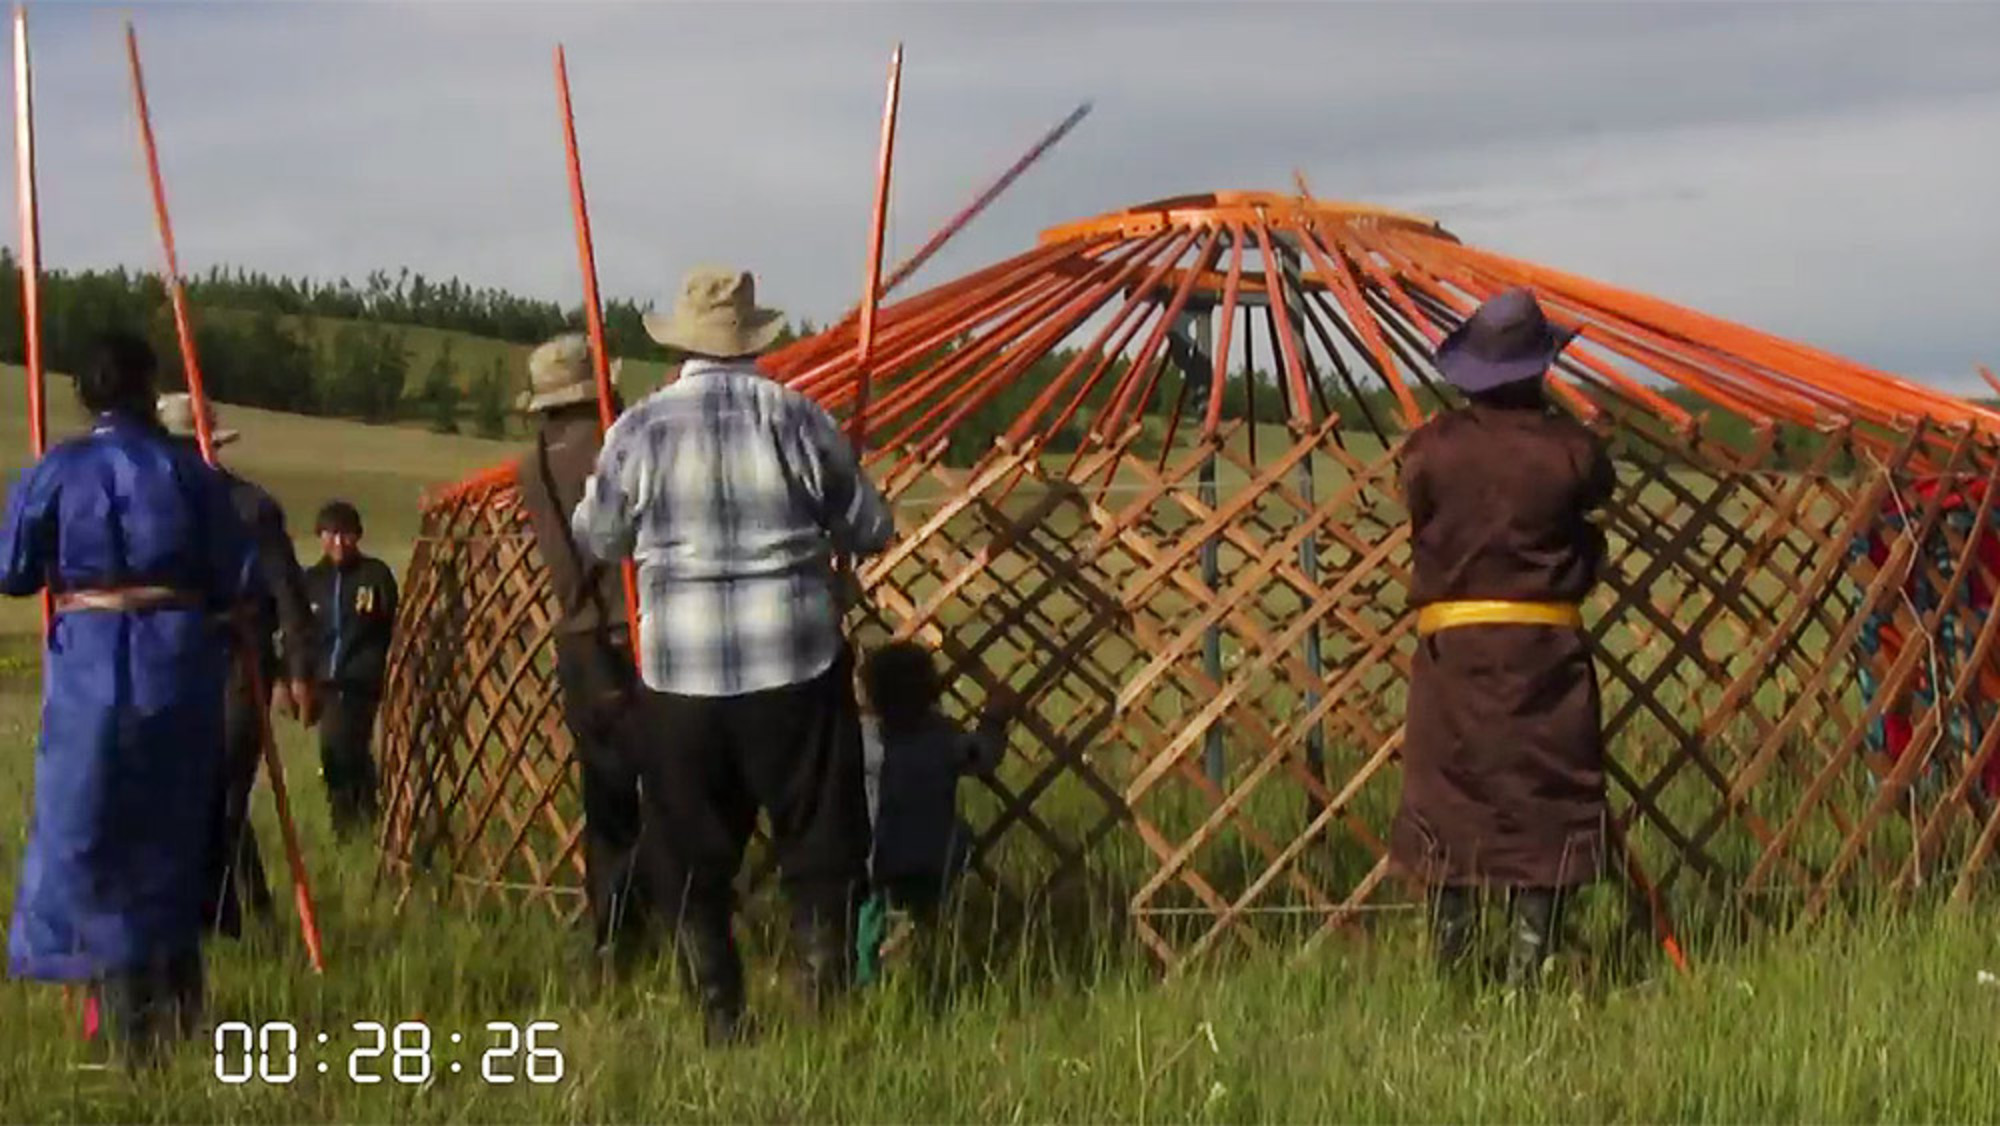 Mongolian nomads building a traditional yurt is a master class in cooperation | Aeon Videos